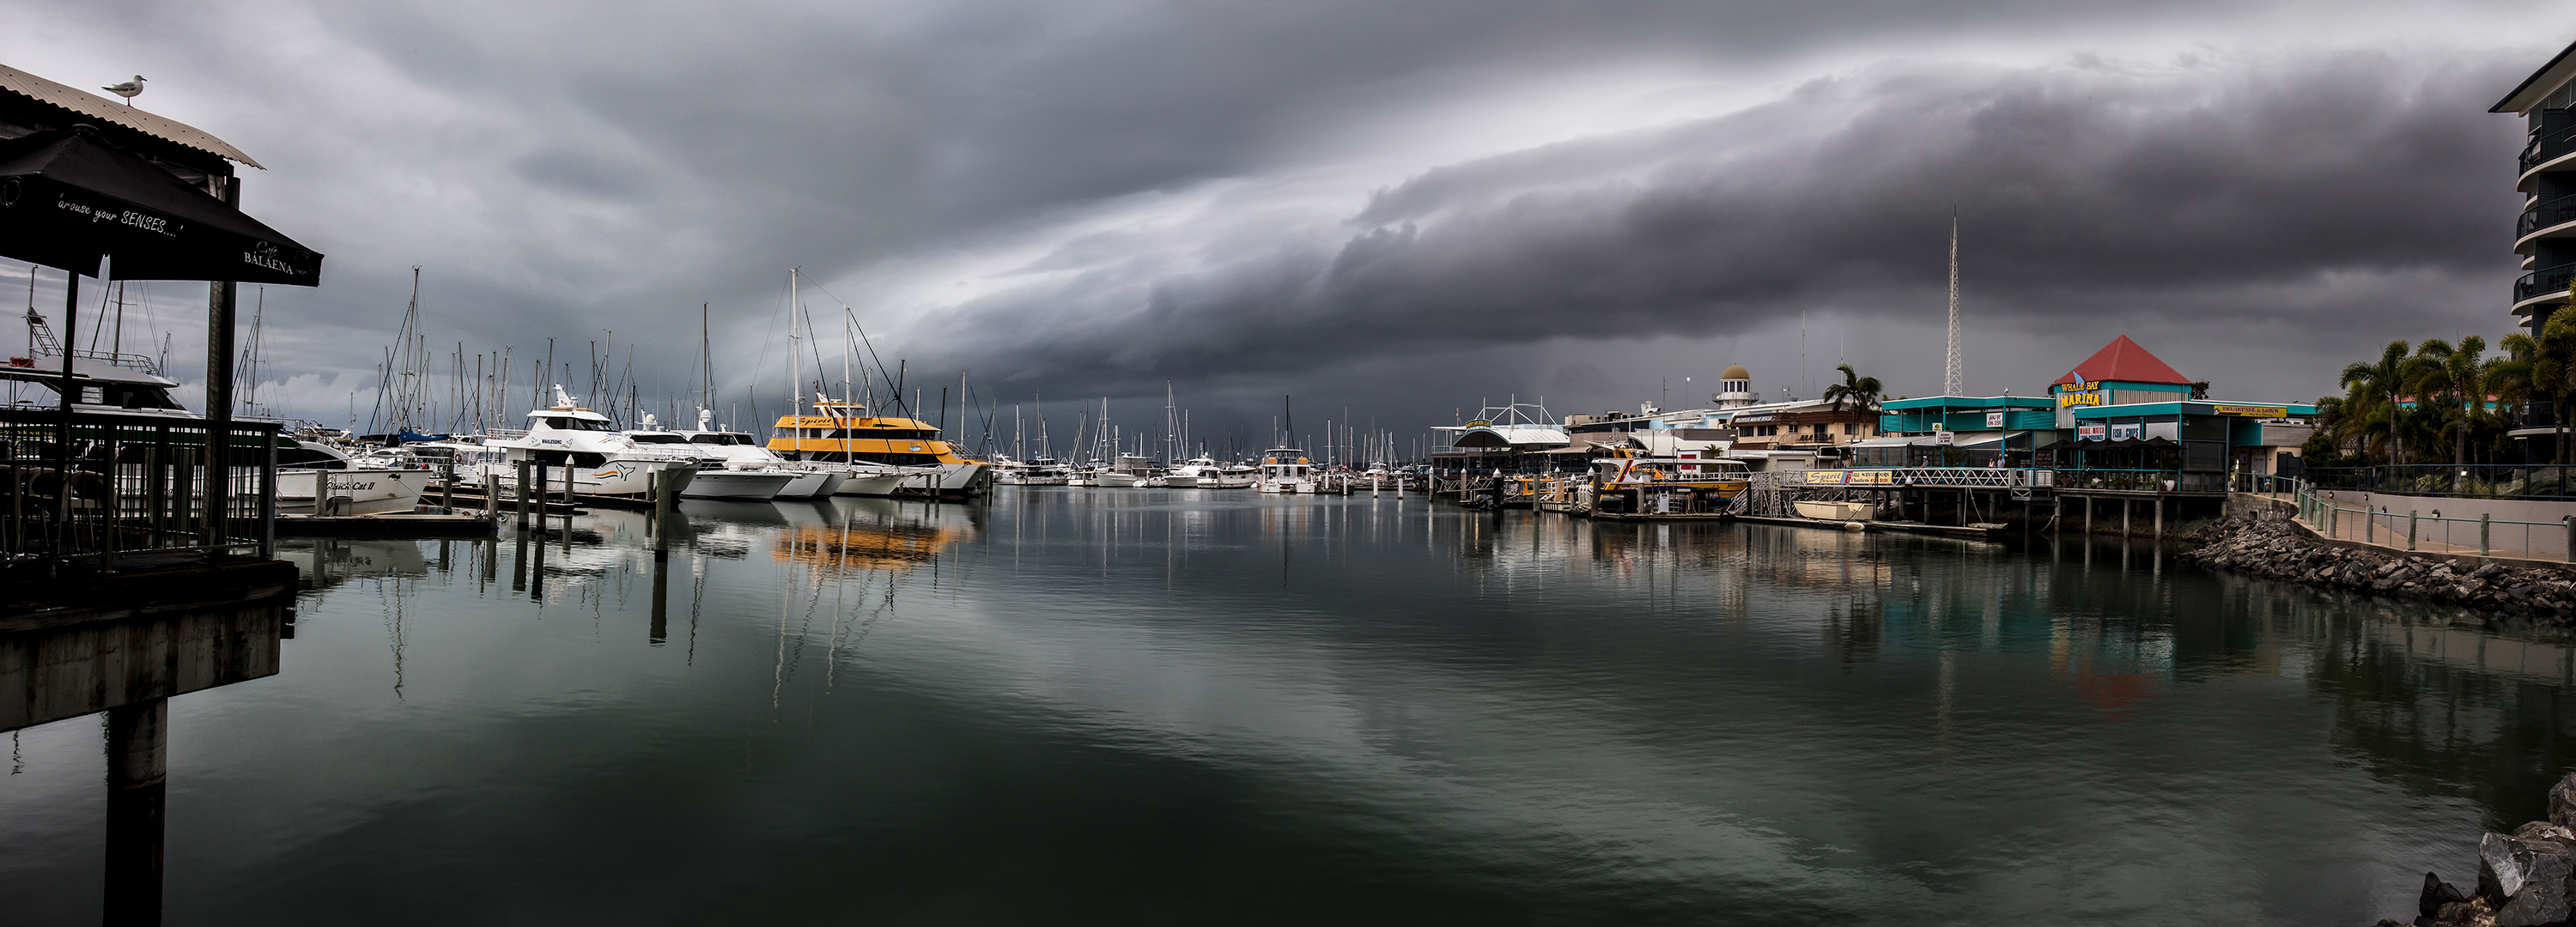 Mirrored Storm at the Marina